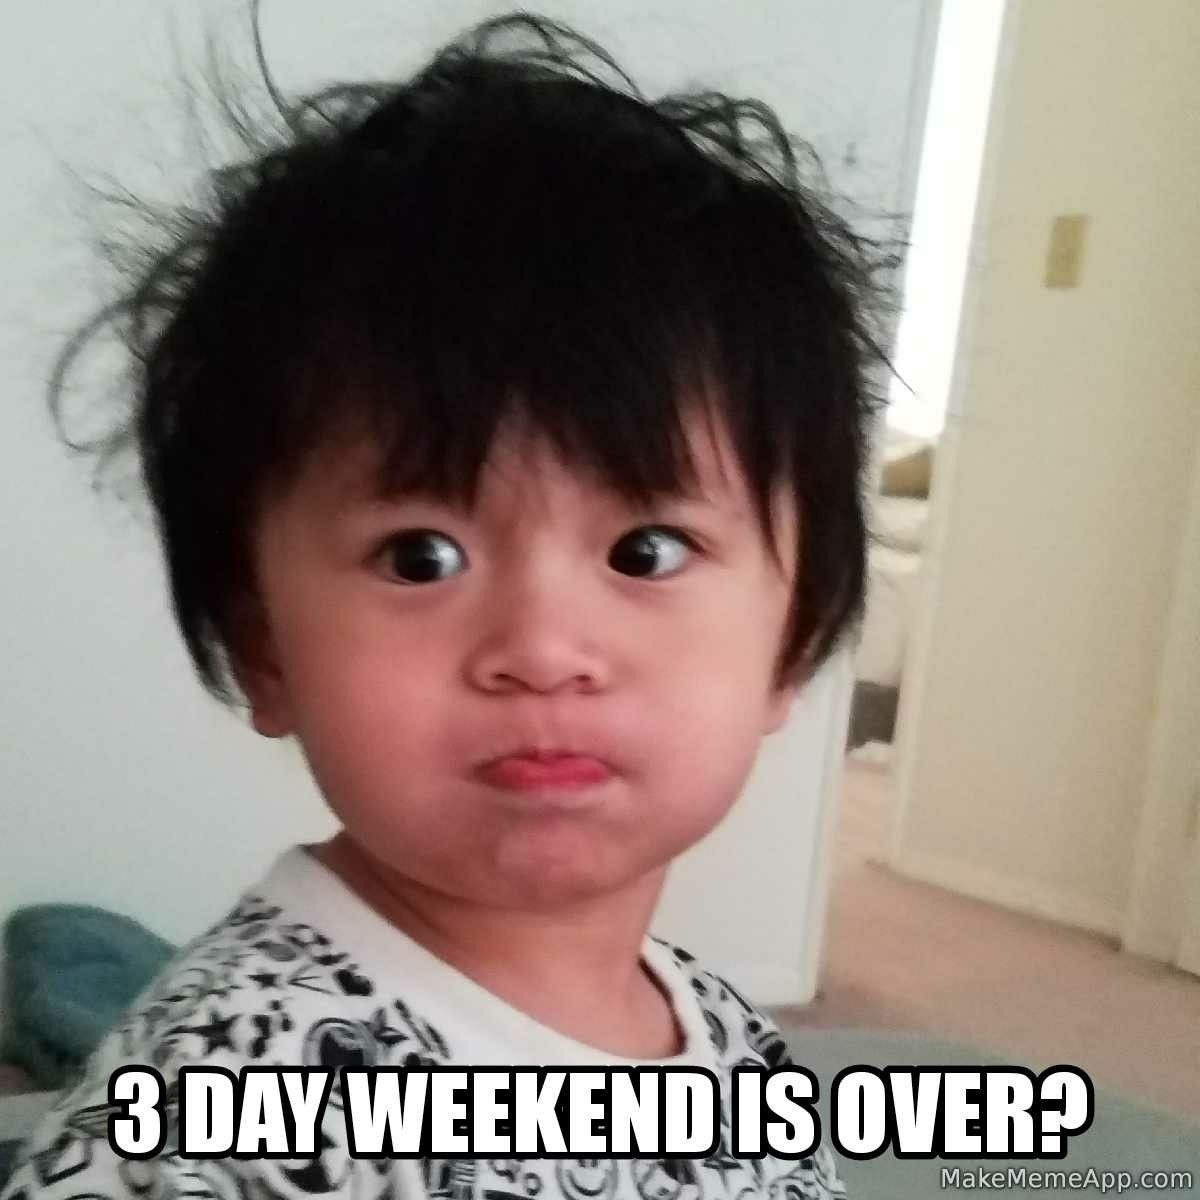 Meme 3 Day Weekend Baby Cute Toddler Weekend Is Over Baby Face Memes